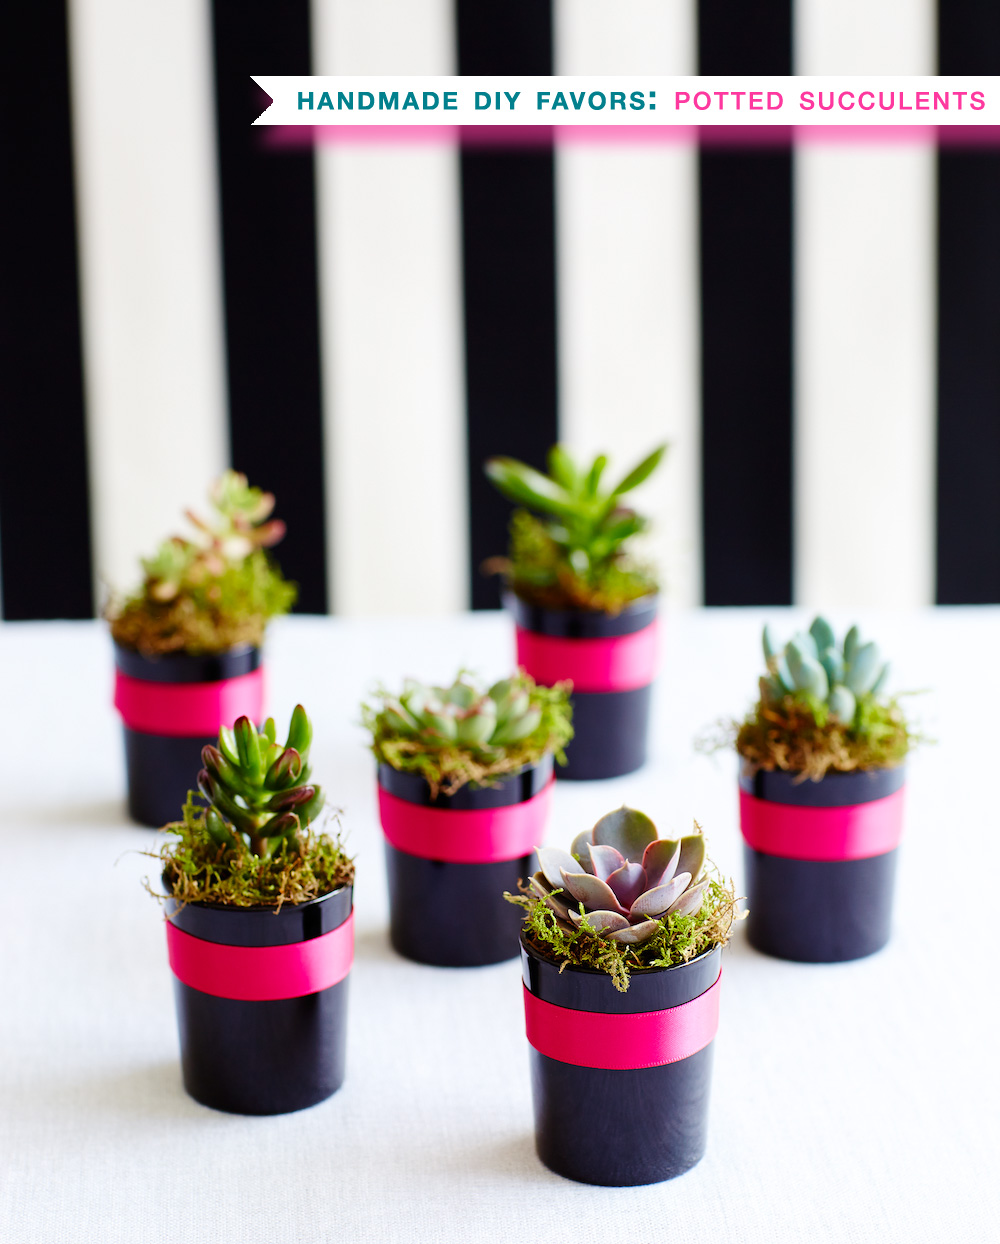 Potted Succulents : DIY Handmade Party Favors / find the how to at www.BrendasWeddingBlog.com